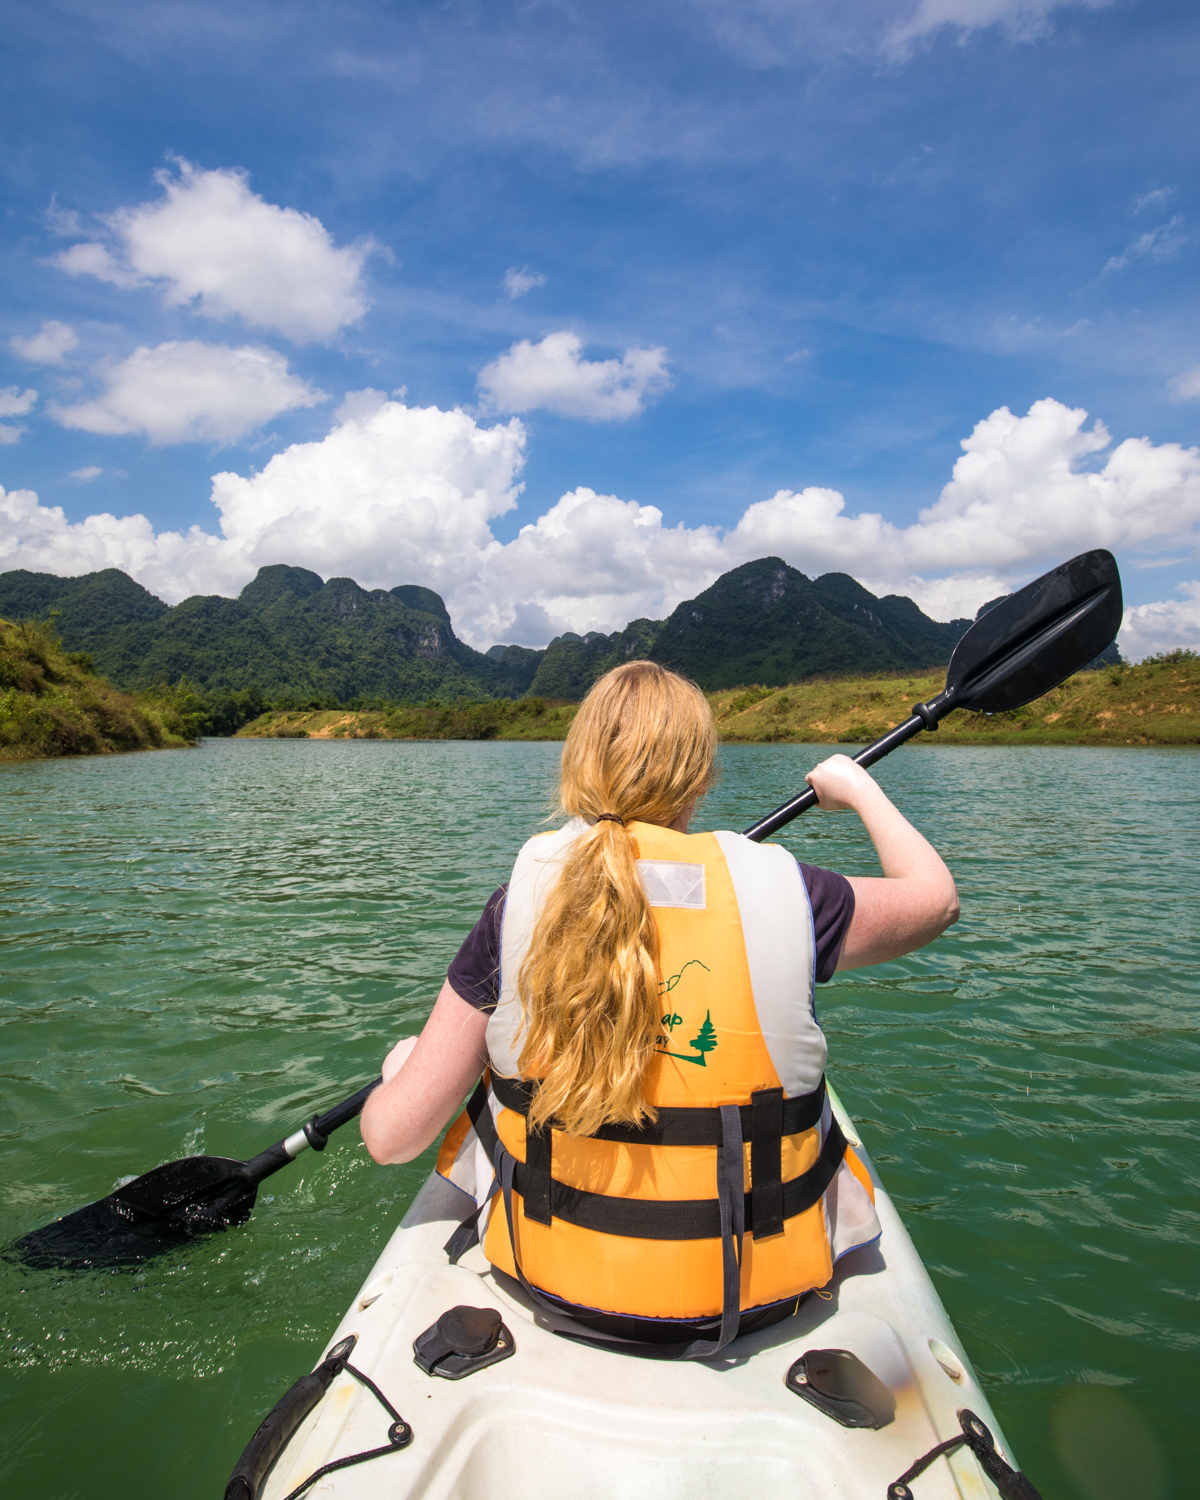 Things to do in Phong Nha - Kayaking